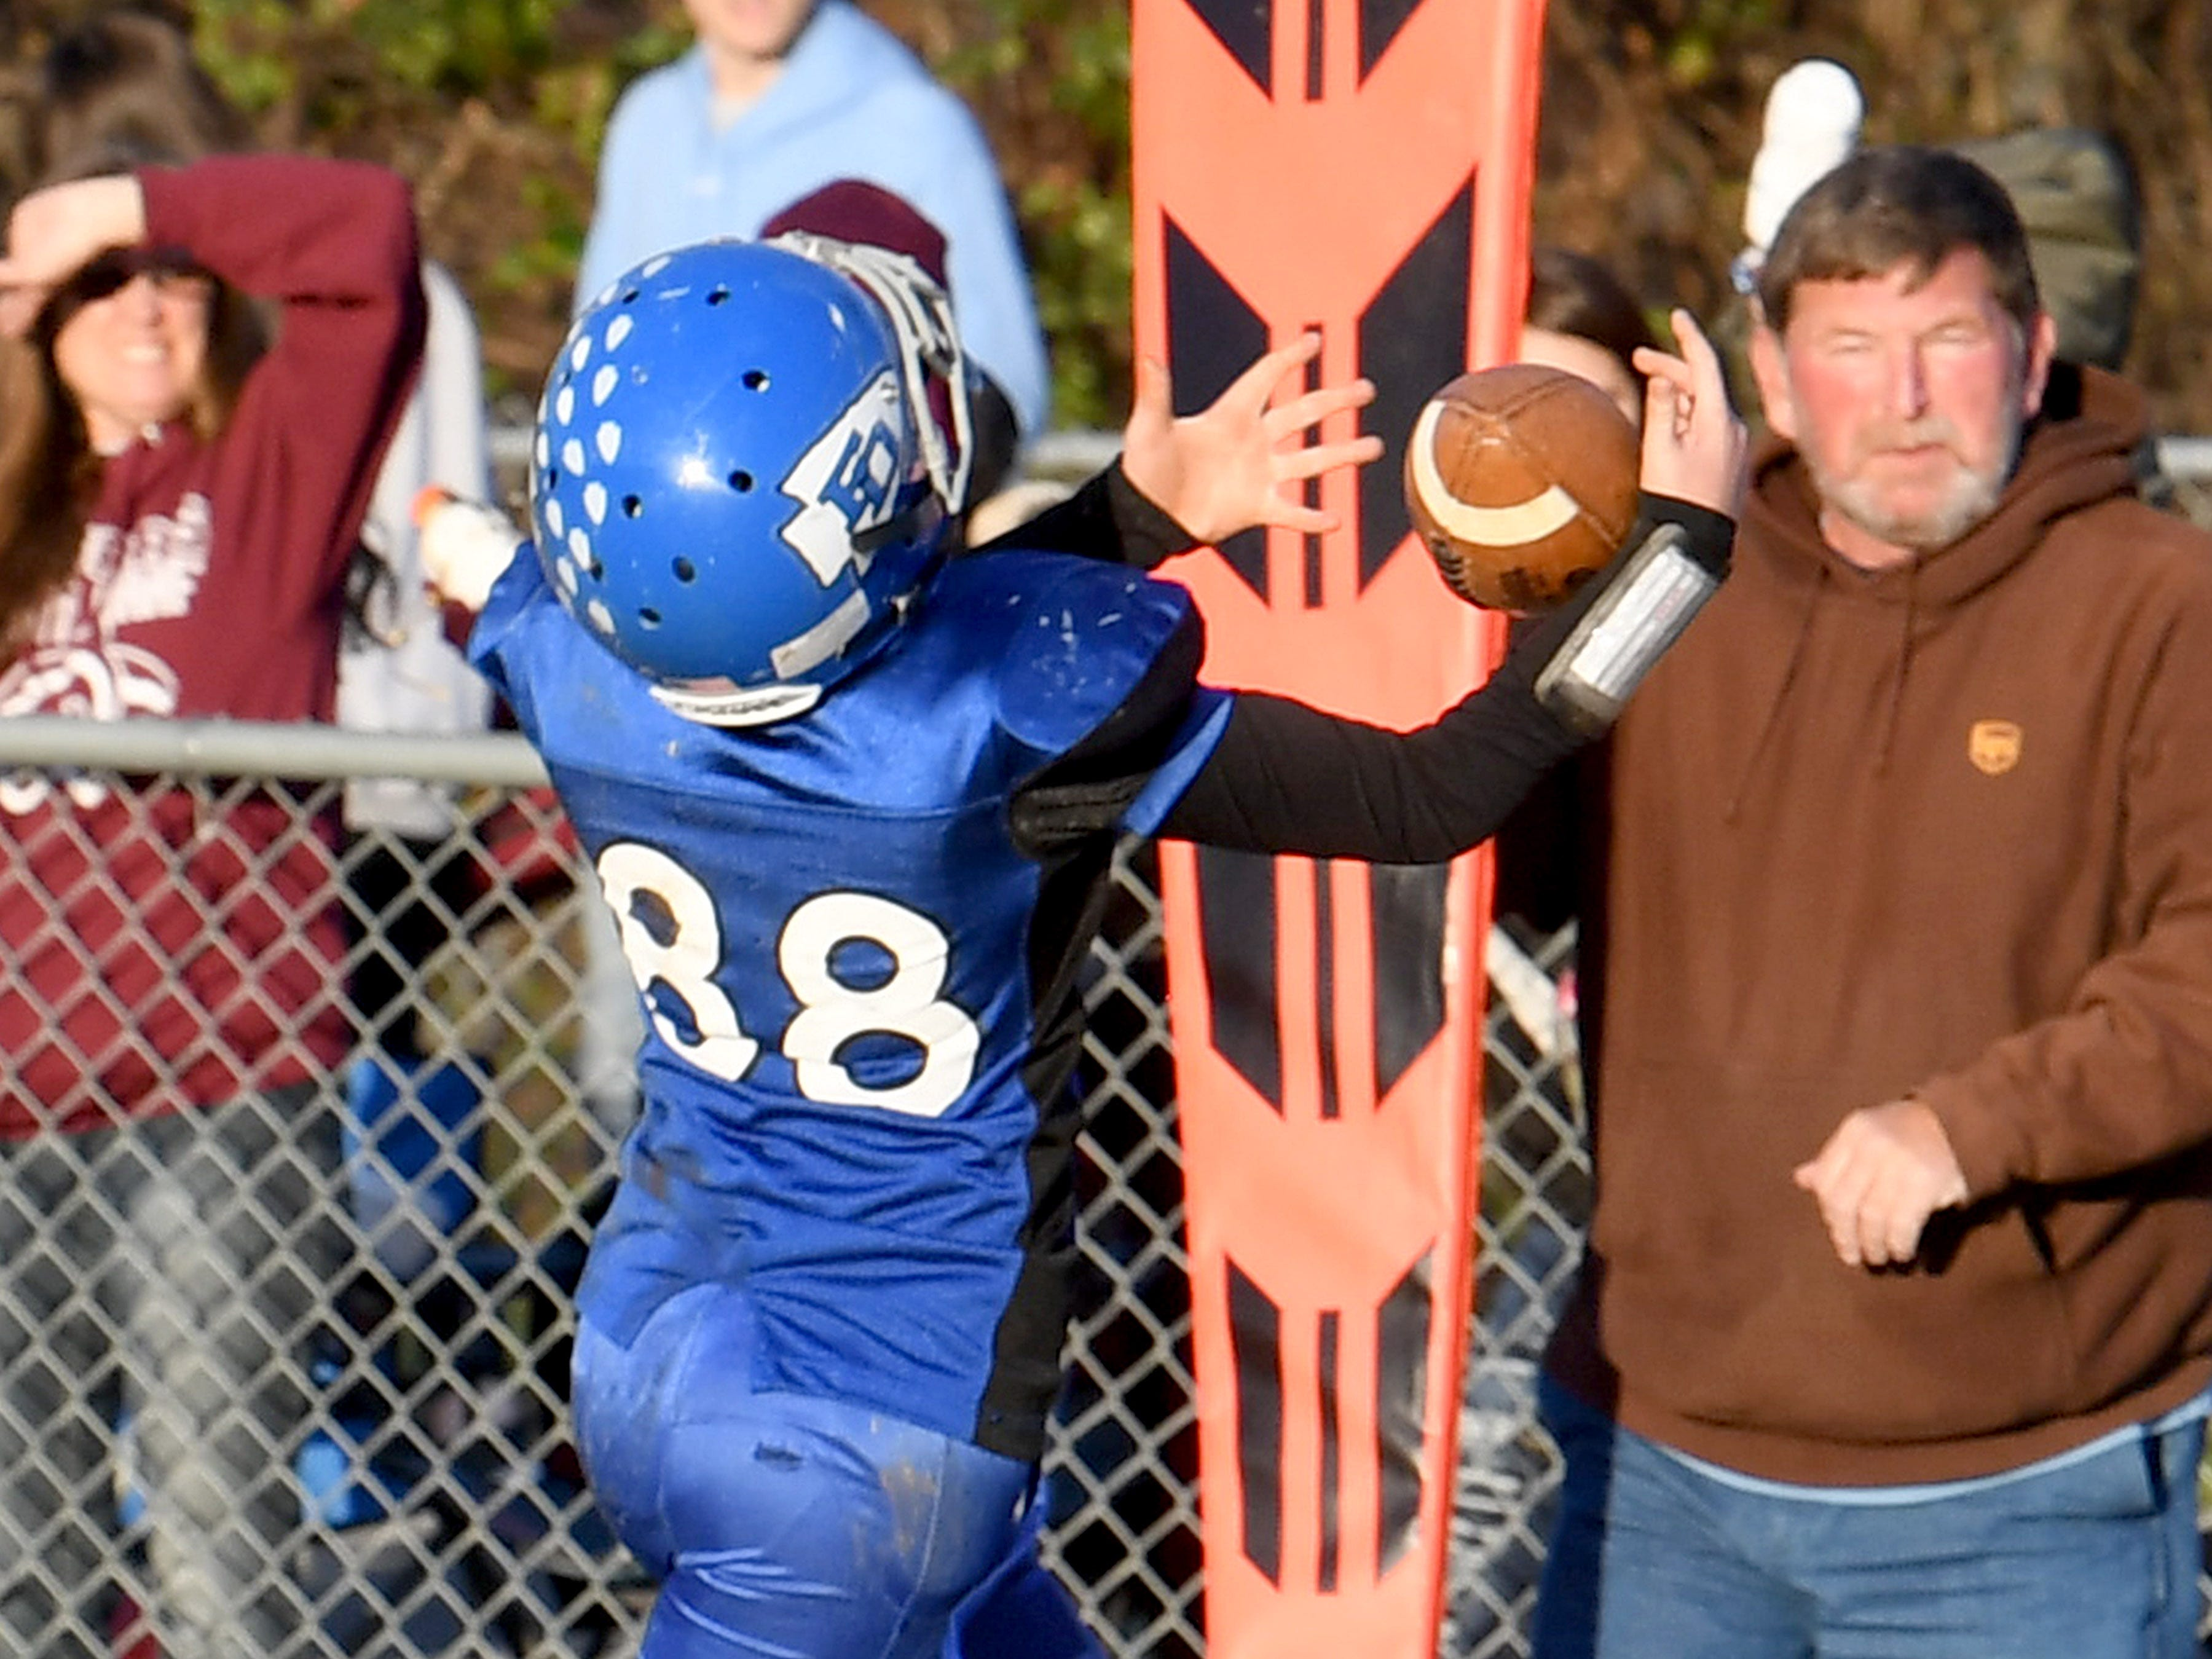 Fort Defiance's Carter Berry catches the ball for a pass completion and will run it downfield into the end zone for a touchdown during the Augusta County Quarterback Club Juniors Super Bowl in Fishersville on Sunday, Nov. 11, 2018.  Fort Defiance beats Stuarts Draft, 13-12.